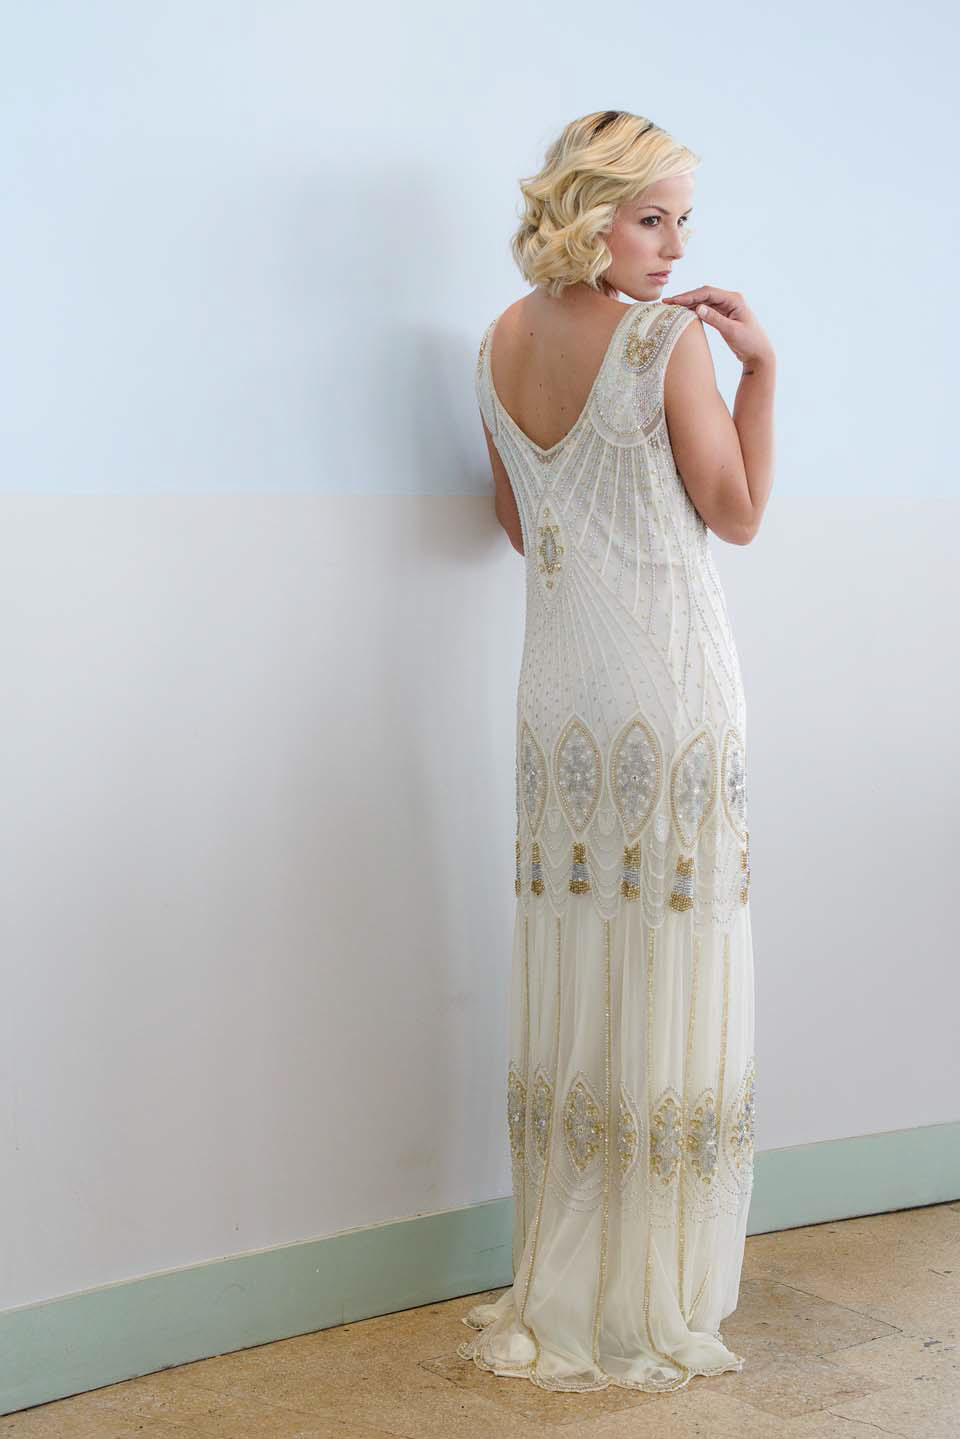 Vicky Rowe:  A Debut Collection of 1920s and 1930s Inspired Heirloom Style Wedding Dresses (Bridal Fashion Fashion & Beauty )